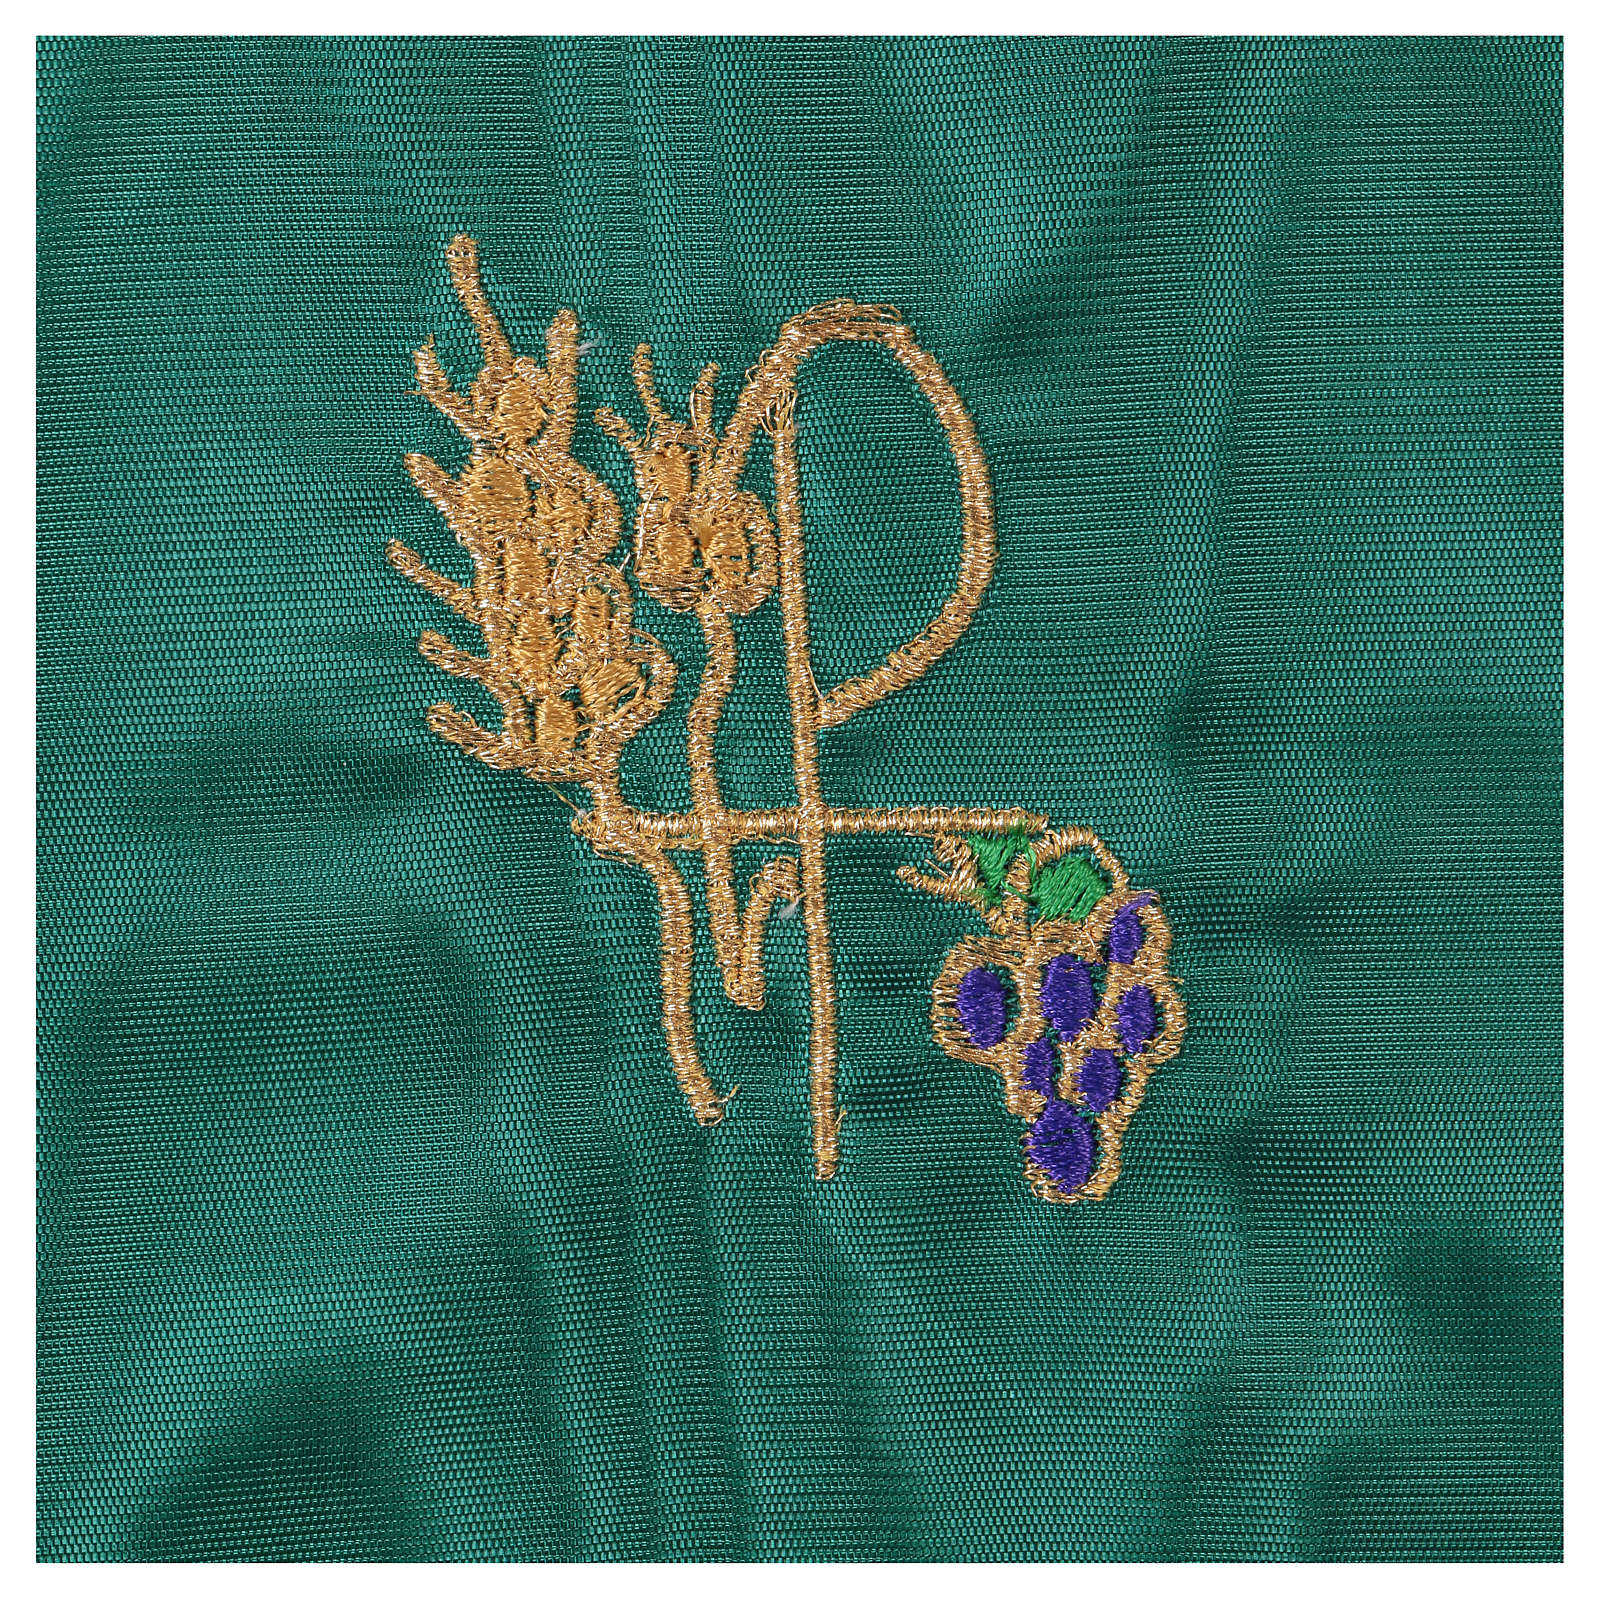 Chalice veil (pall) with Xp, wheat and grapes embroidery on green fabric 4